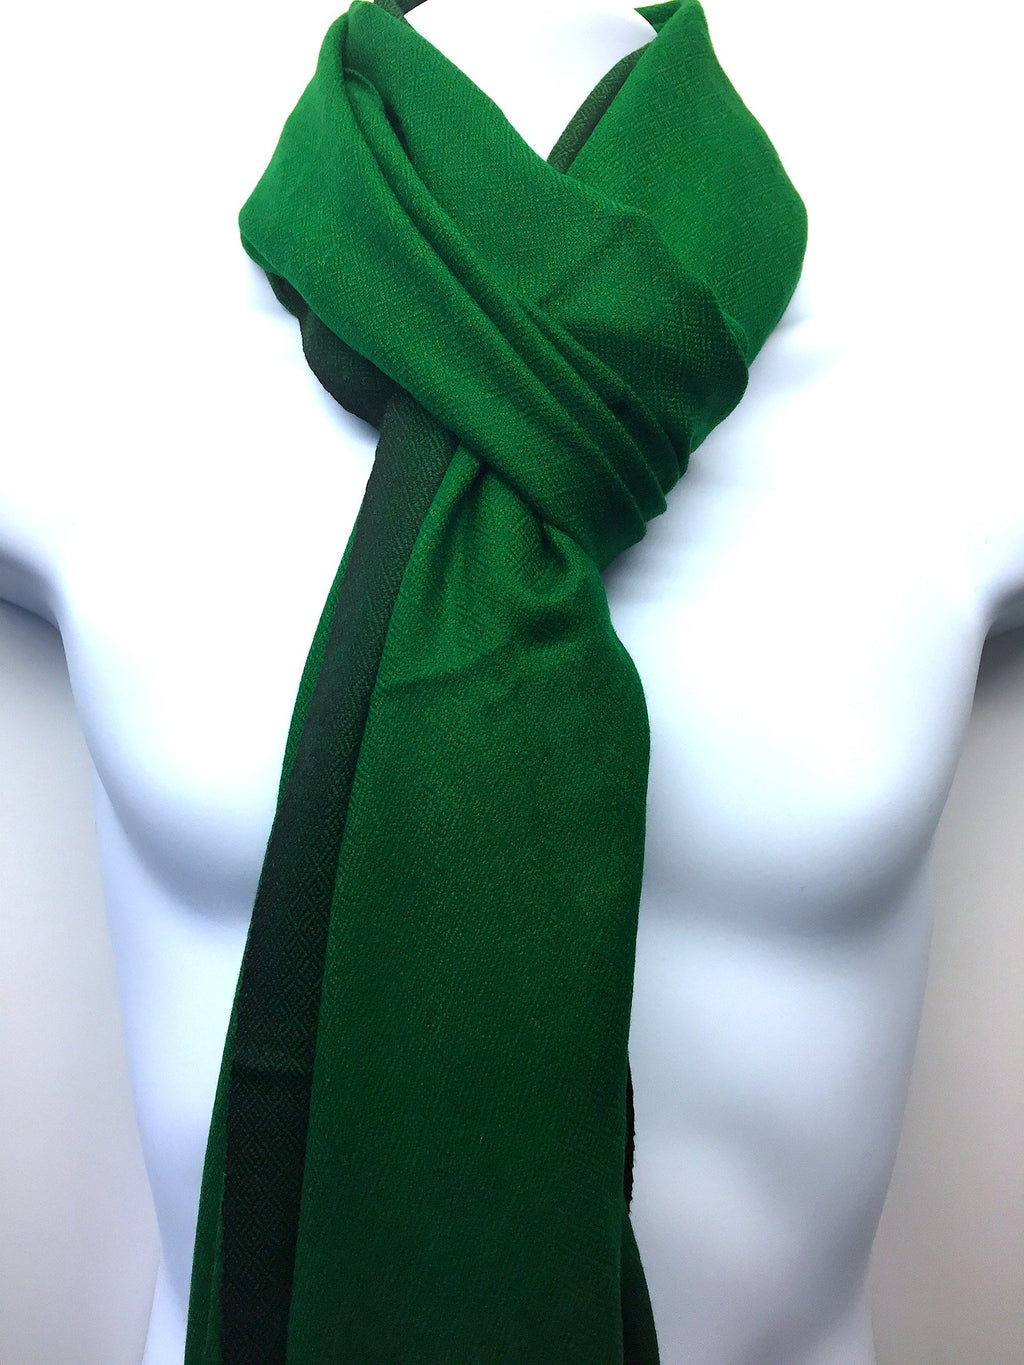 Pure 100% Wool, Bright Green, Stole